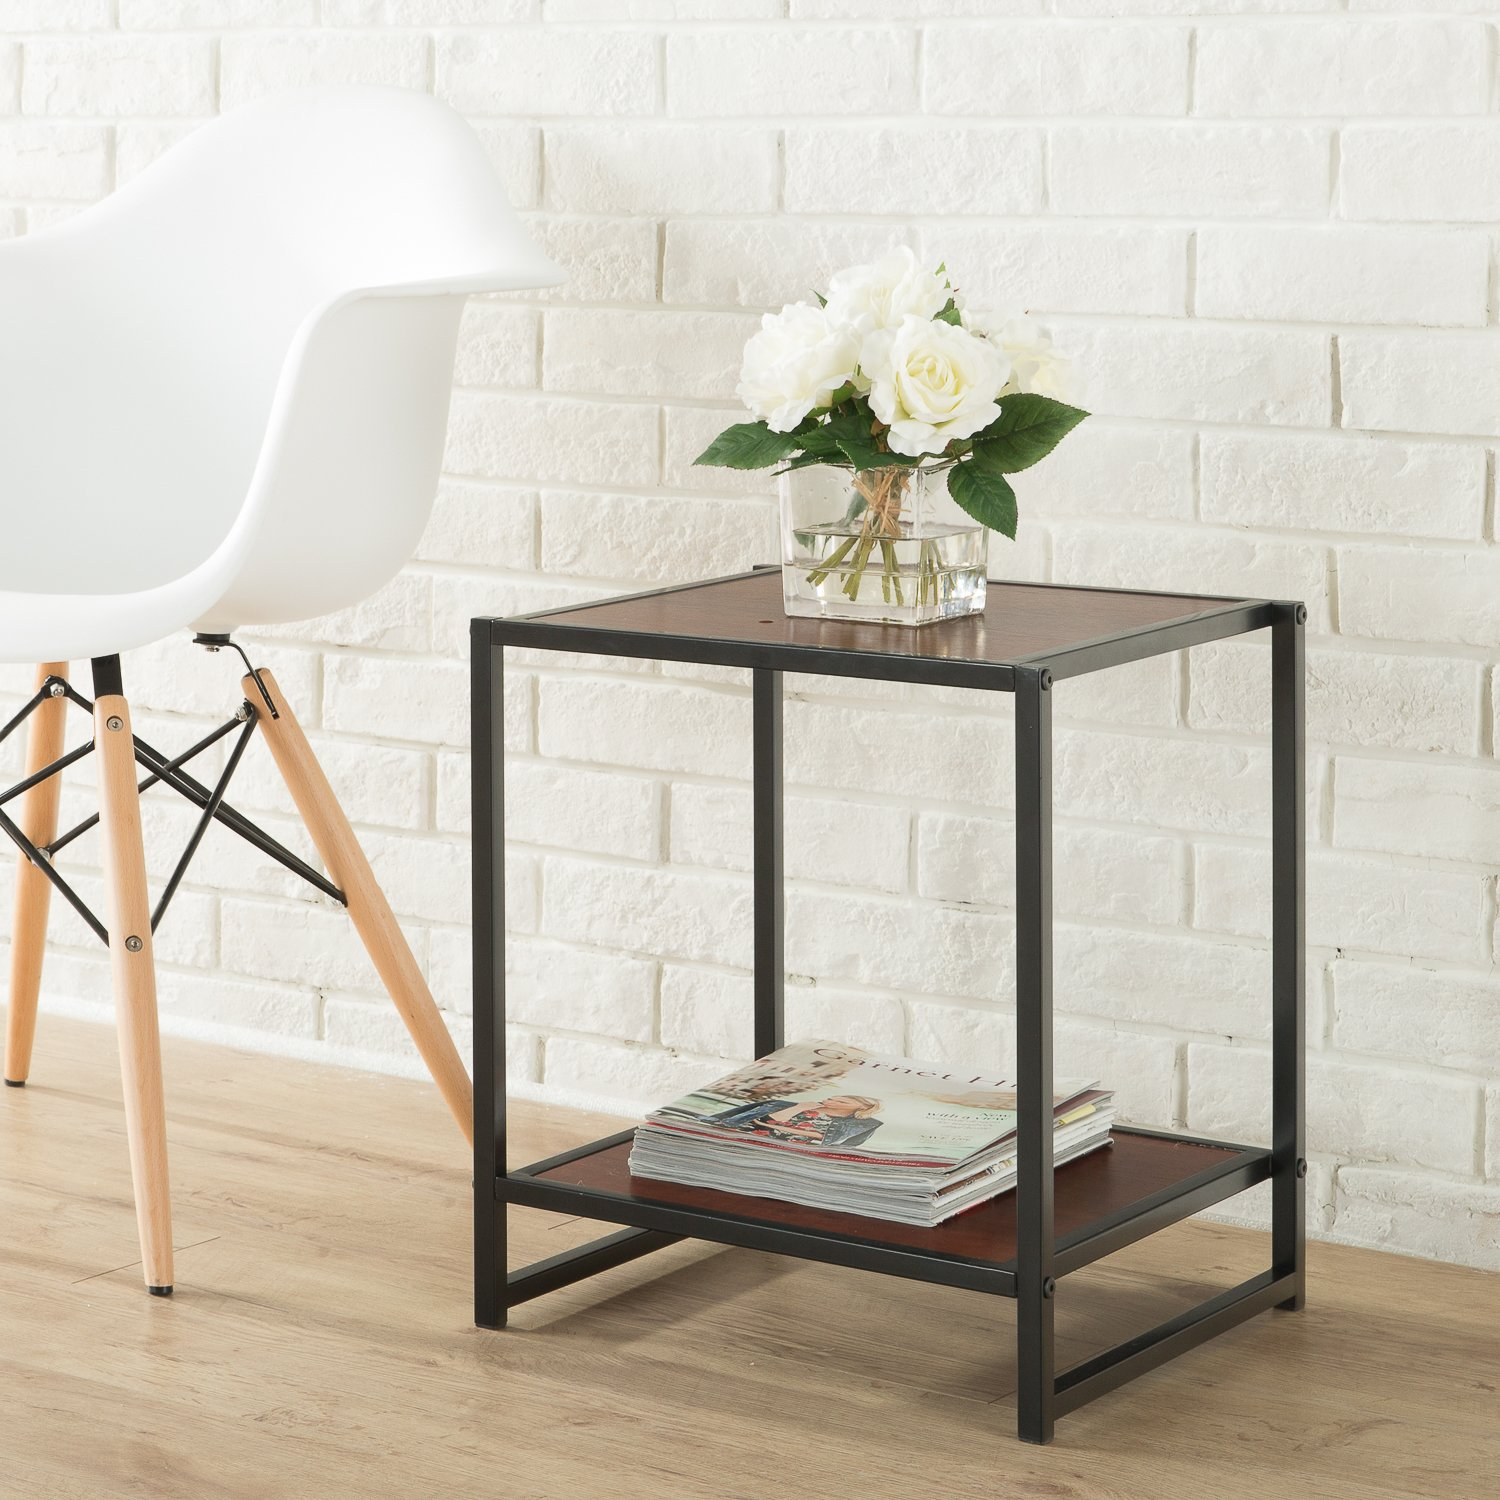 Zinus Modern Studio Collection 15 Inch Square Side Table / End Table / Coffee  Table - Amazon.com: Tables - Living Room Furniture: Home & Kitchen: Coffee